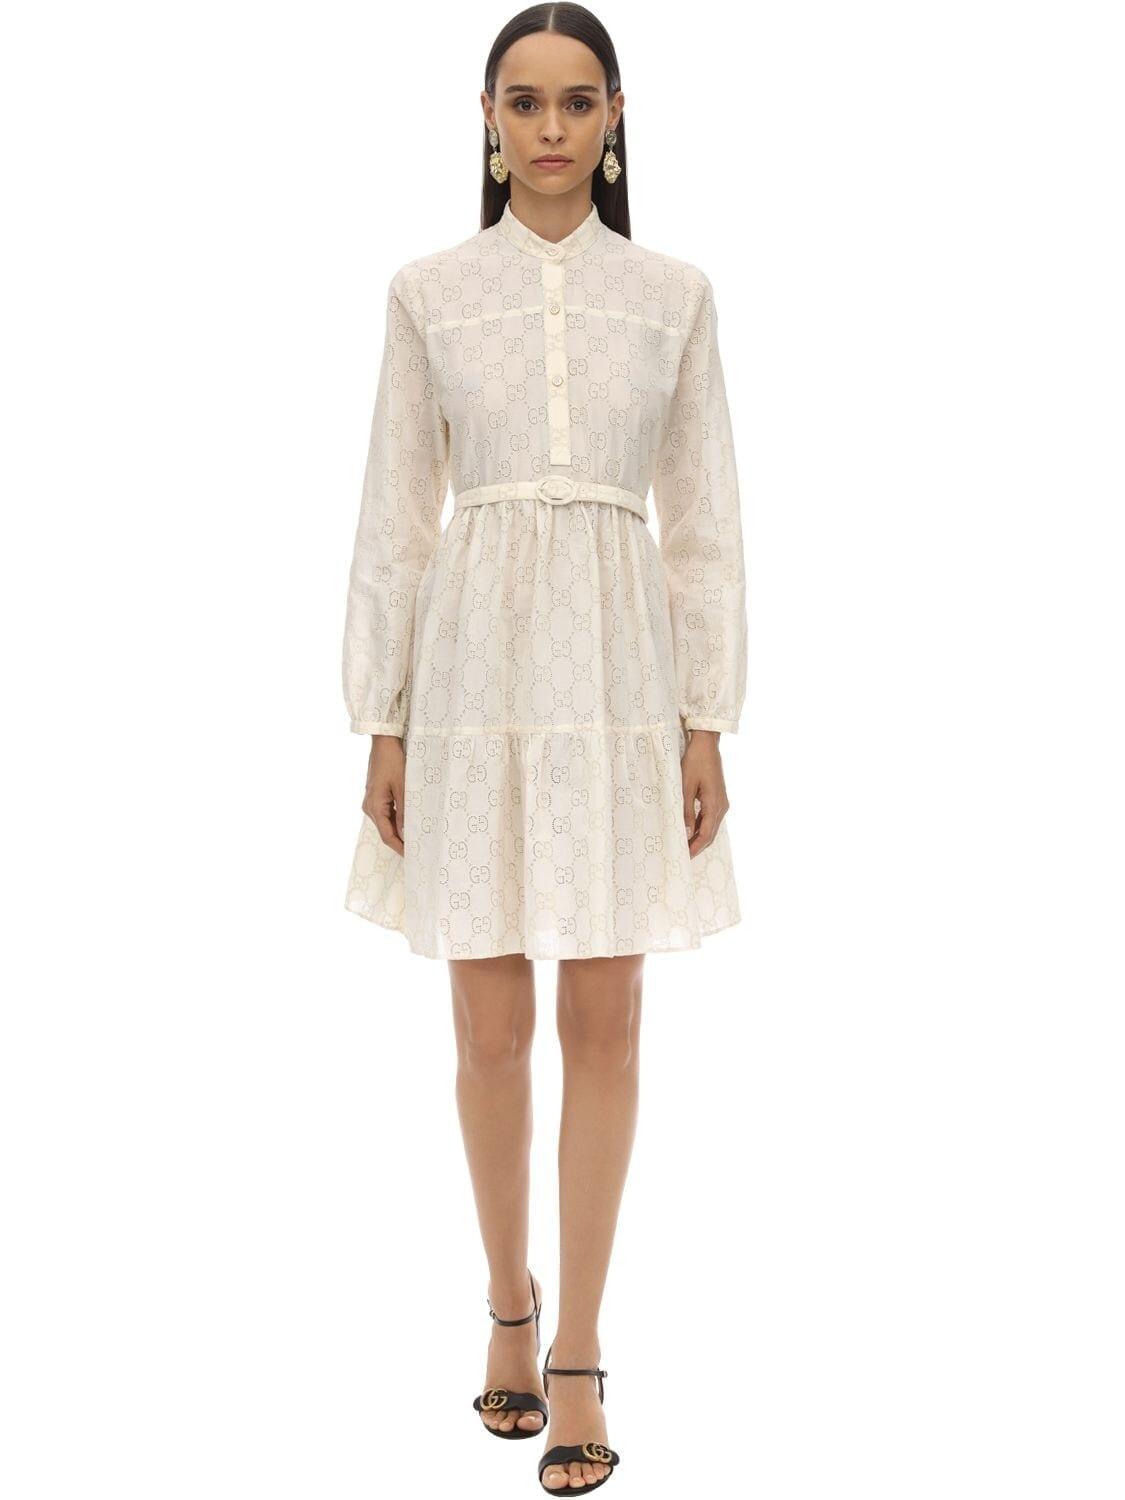 GUCCI Gg Belted Cotton Blend Lace Dress